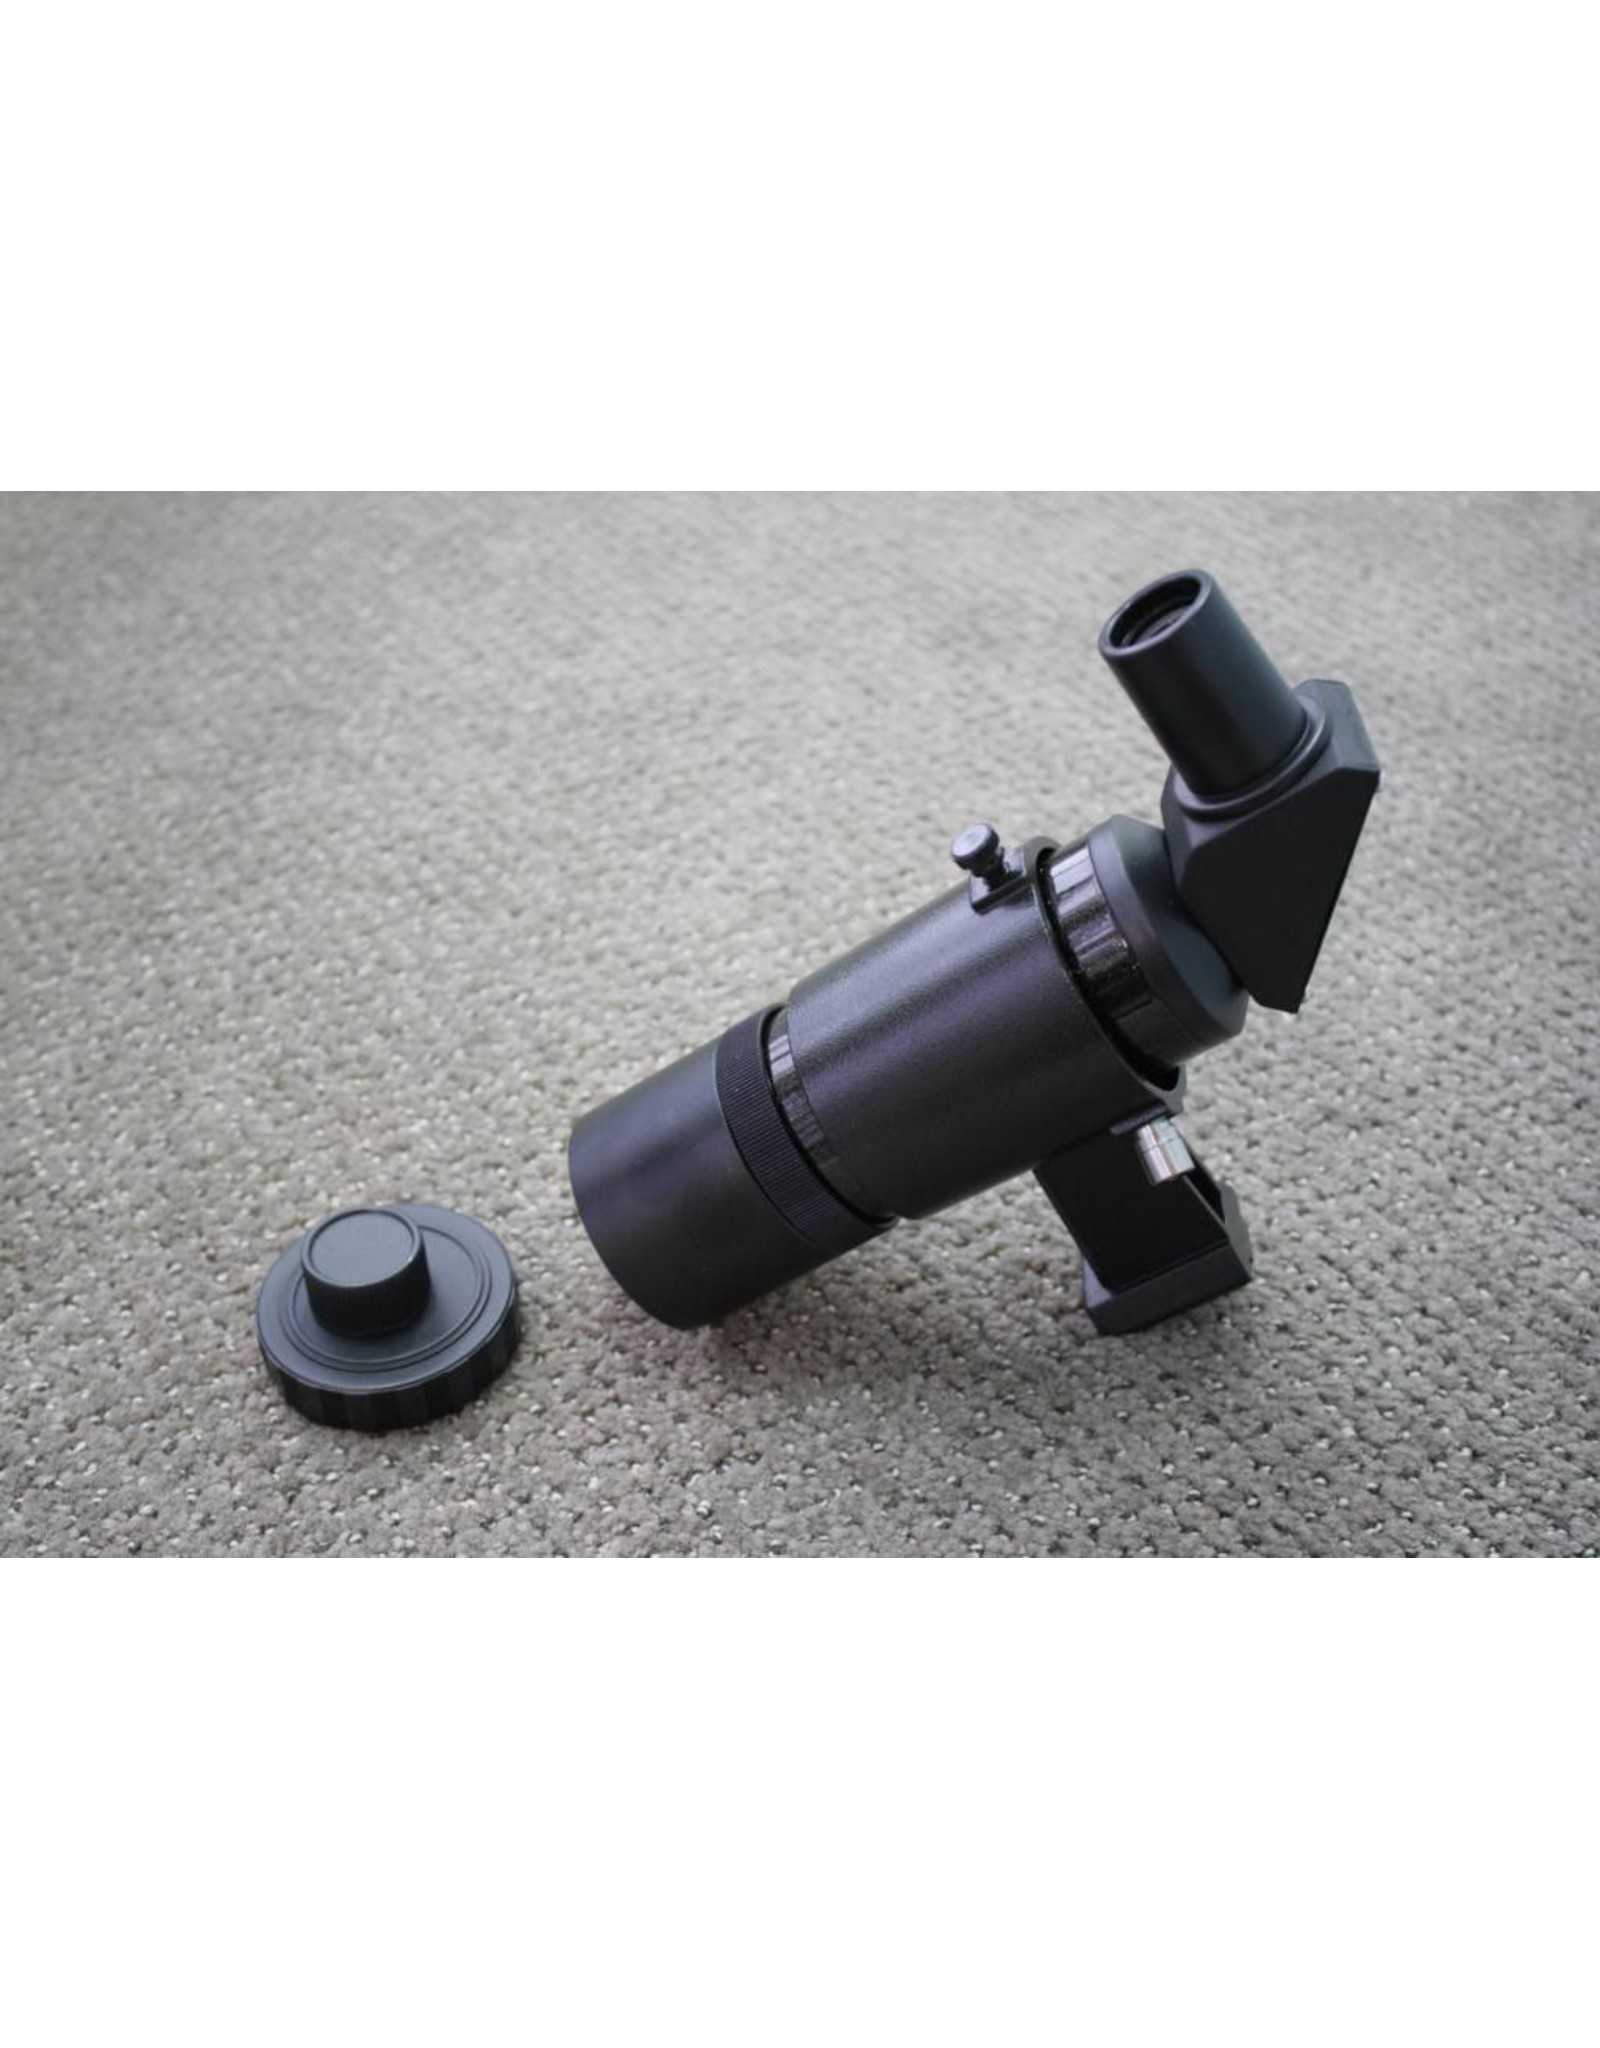 Arcturus Arcturus Black 9x50 Right-Angle Correct-Image Finder Scope